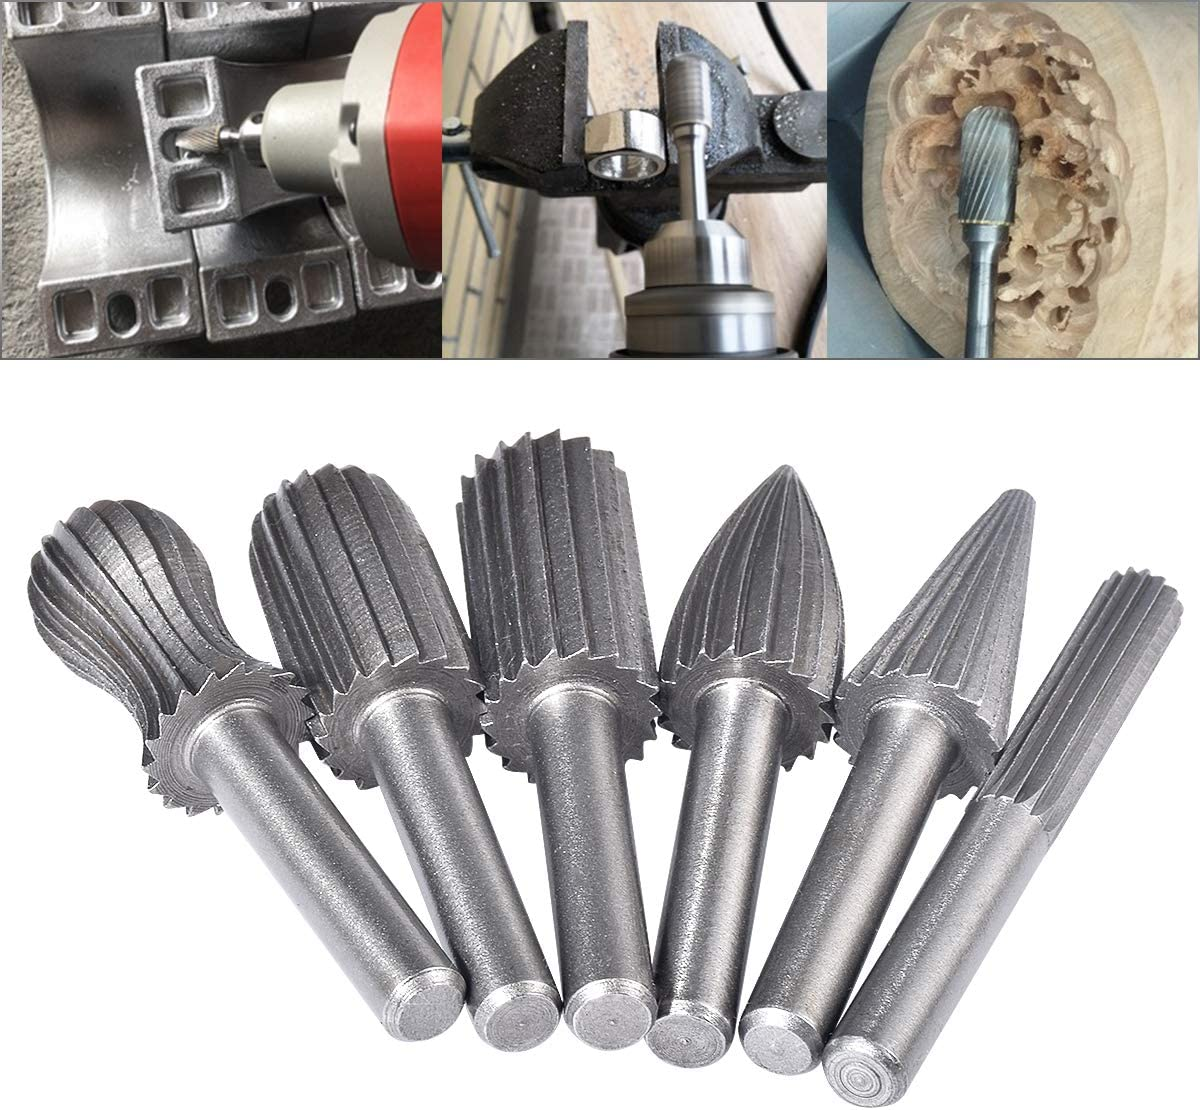 HOHXEN 6pcs Double Cut Rotary Burr Set with 6 mm Drilling Metal Carving Engraving Shank Die Grinder Bits for DIY Woodworking 1//4 Inch Polishing